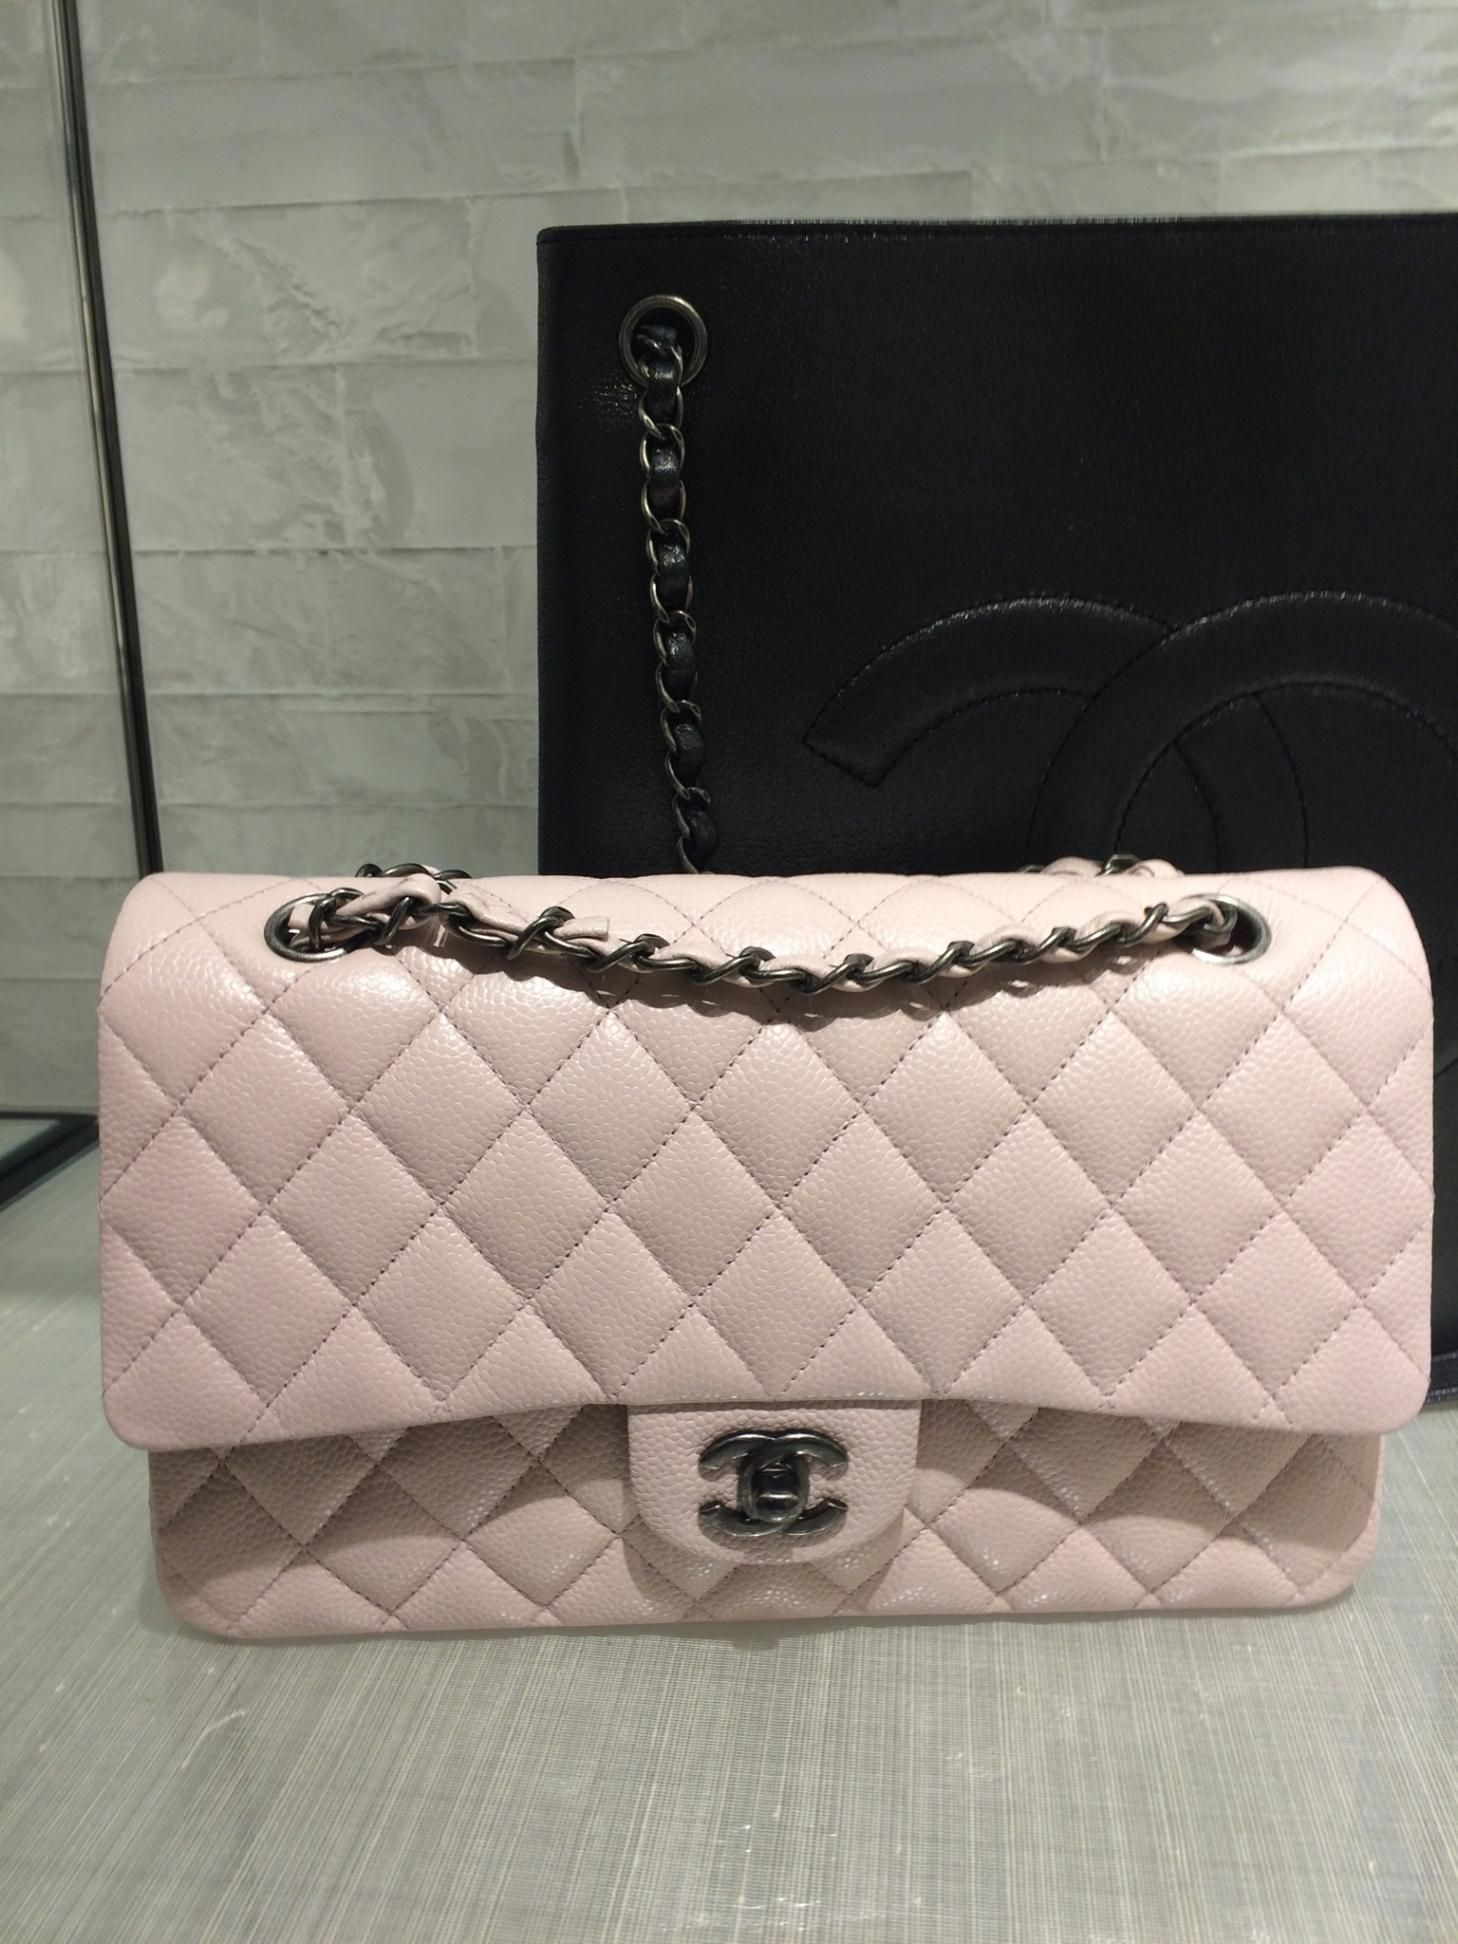 664c1ea73da8 Chanel Cruise 2016 Classic Medium Flap Bag in Soft Pink Caviar with  Ruthenium Hardware